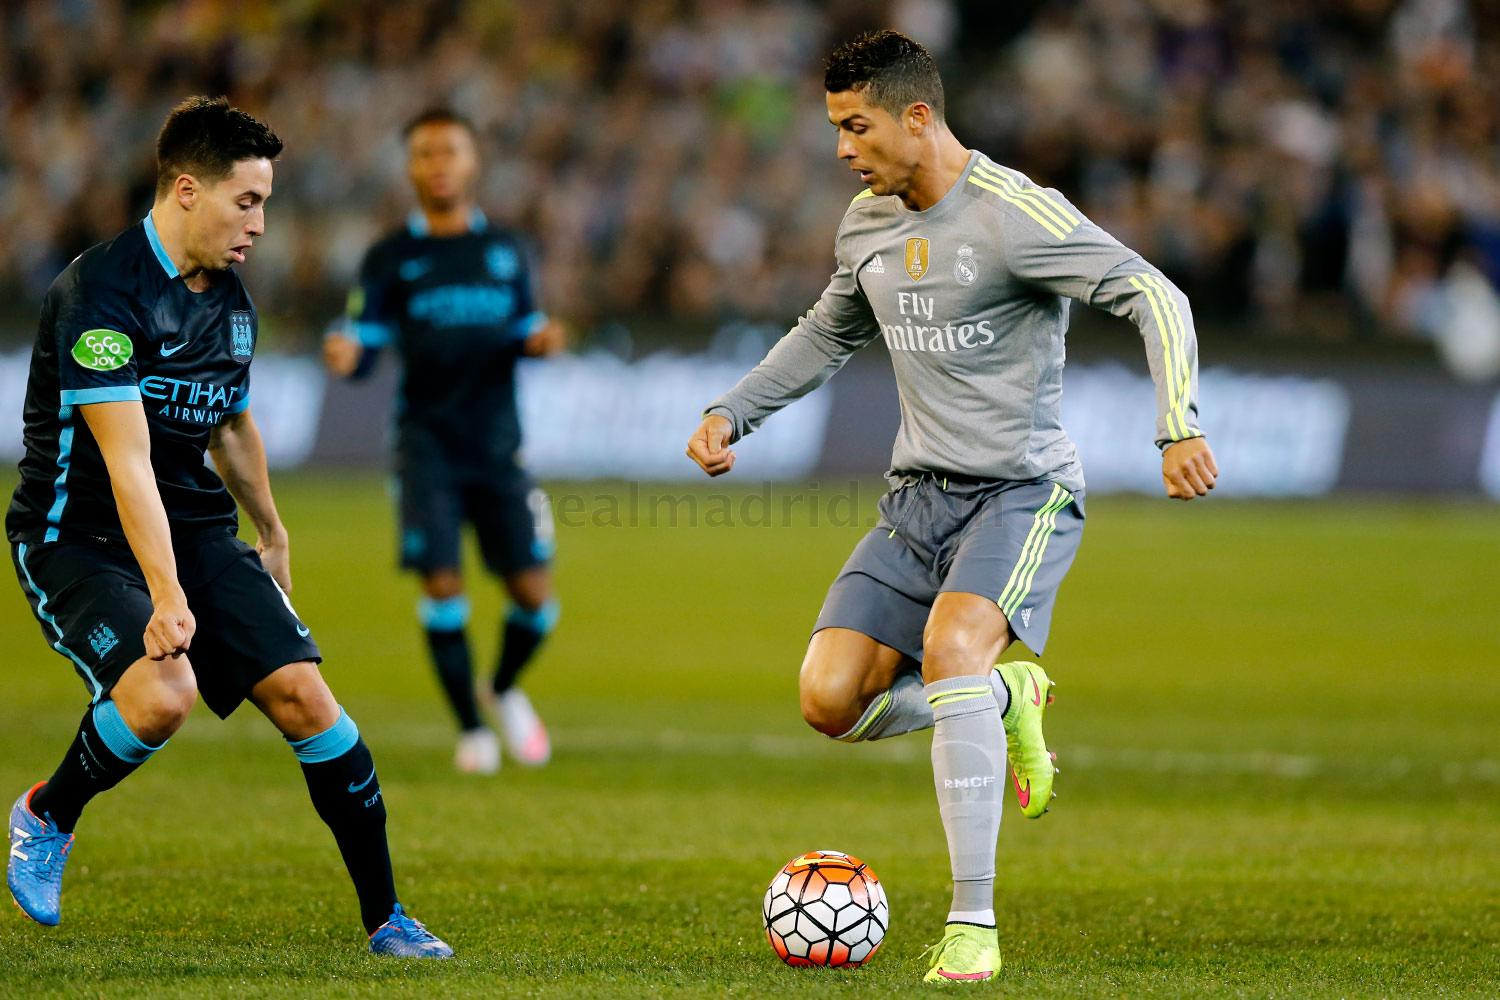 Real Madrid - Manchester City - Real Madrid - 24-07-2015